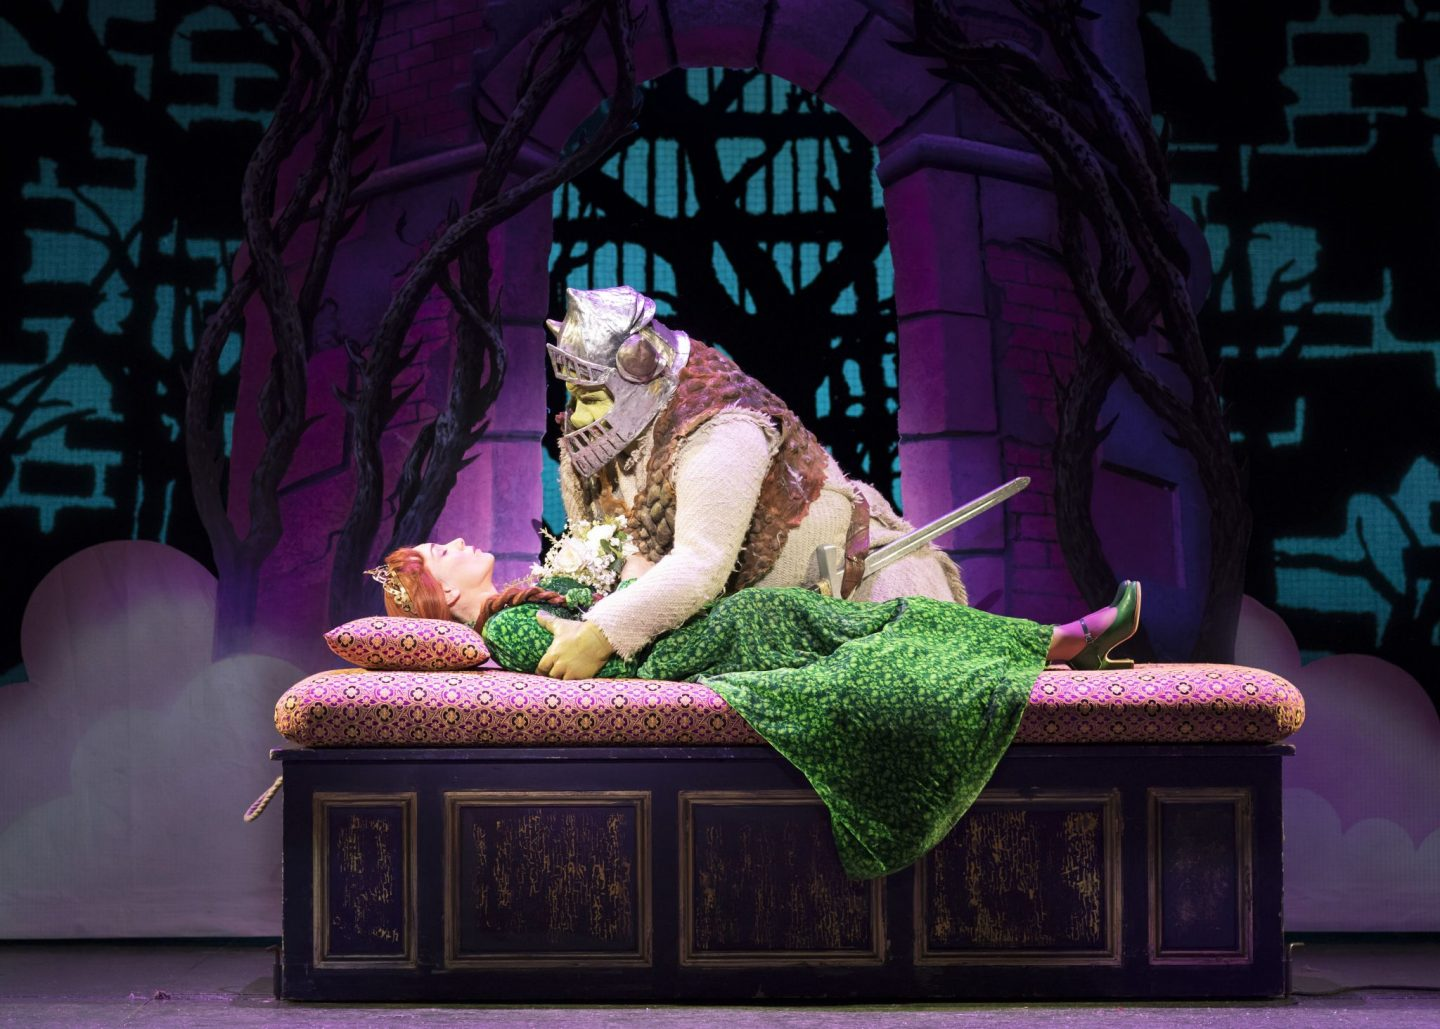 Shrek the musical hits Edinburgh